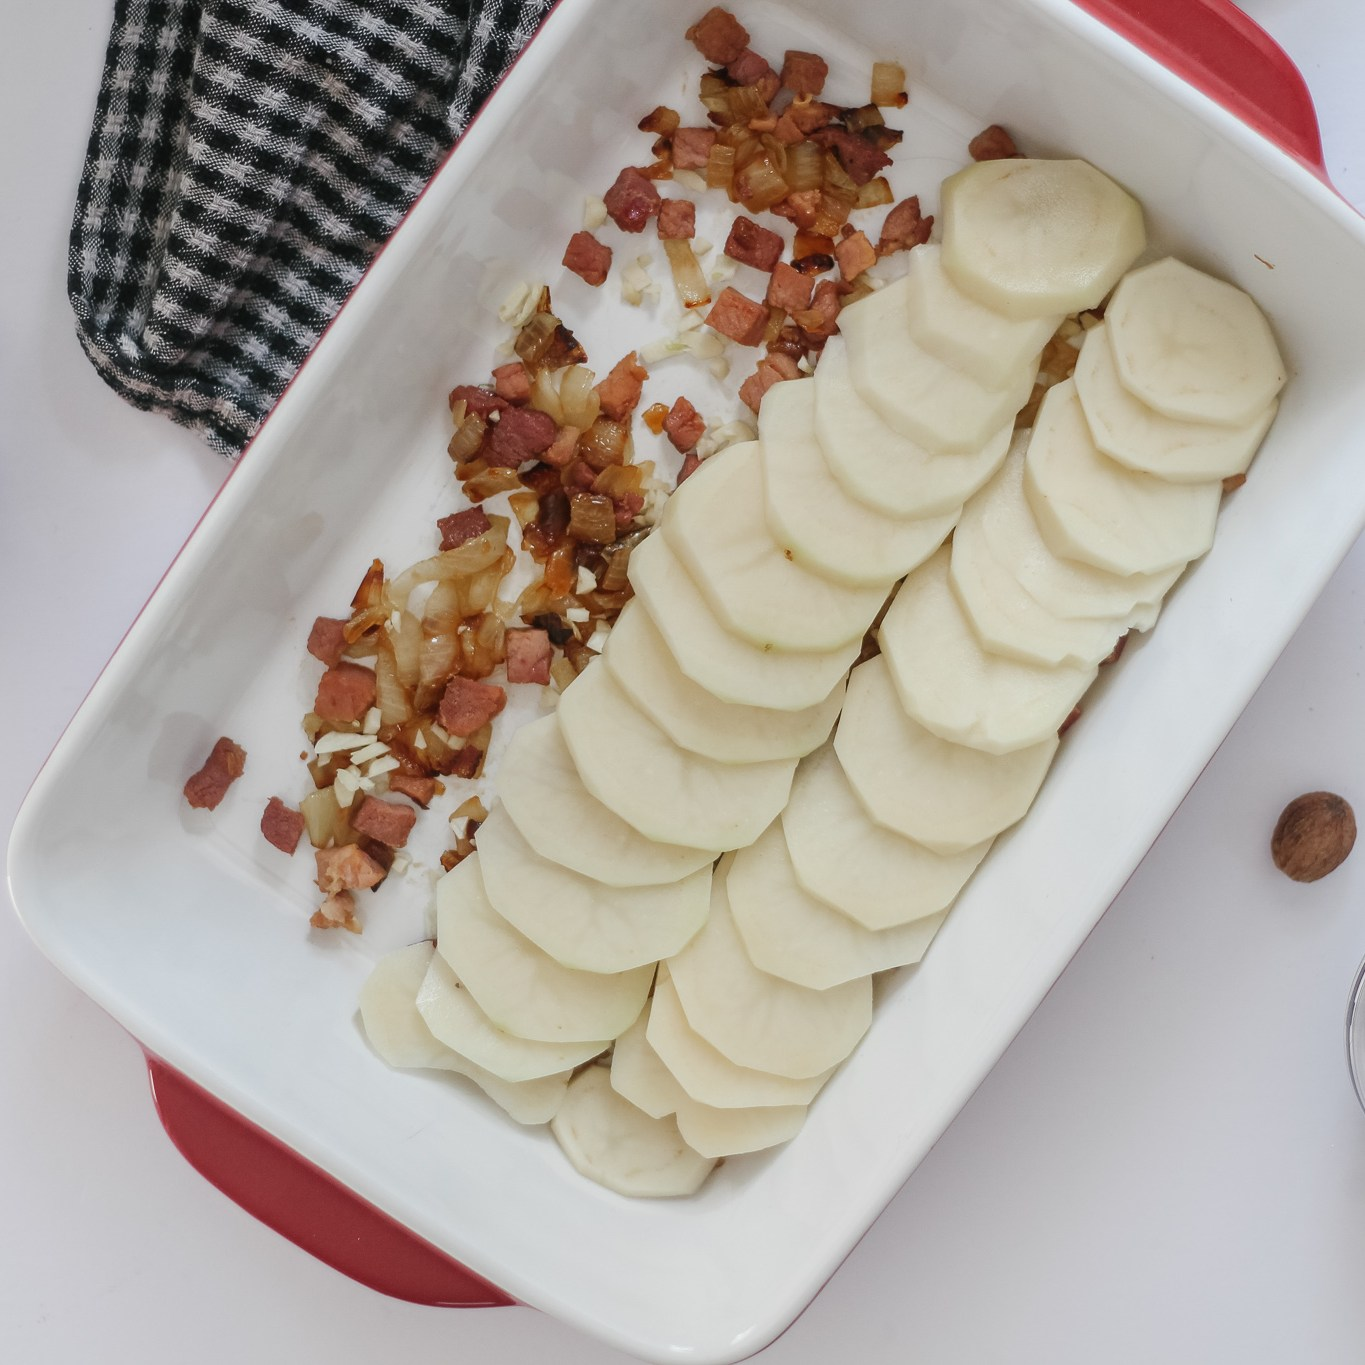 Building the scalloped potatoes dish:Thinly sliced potatoes on ham and onion